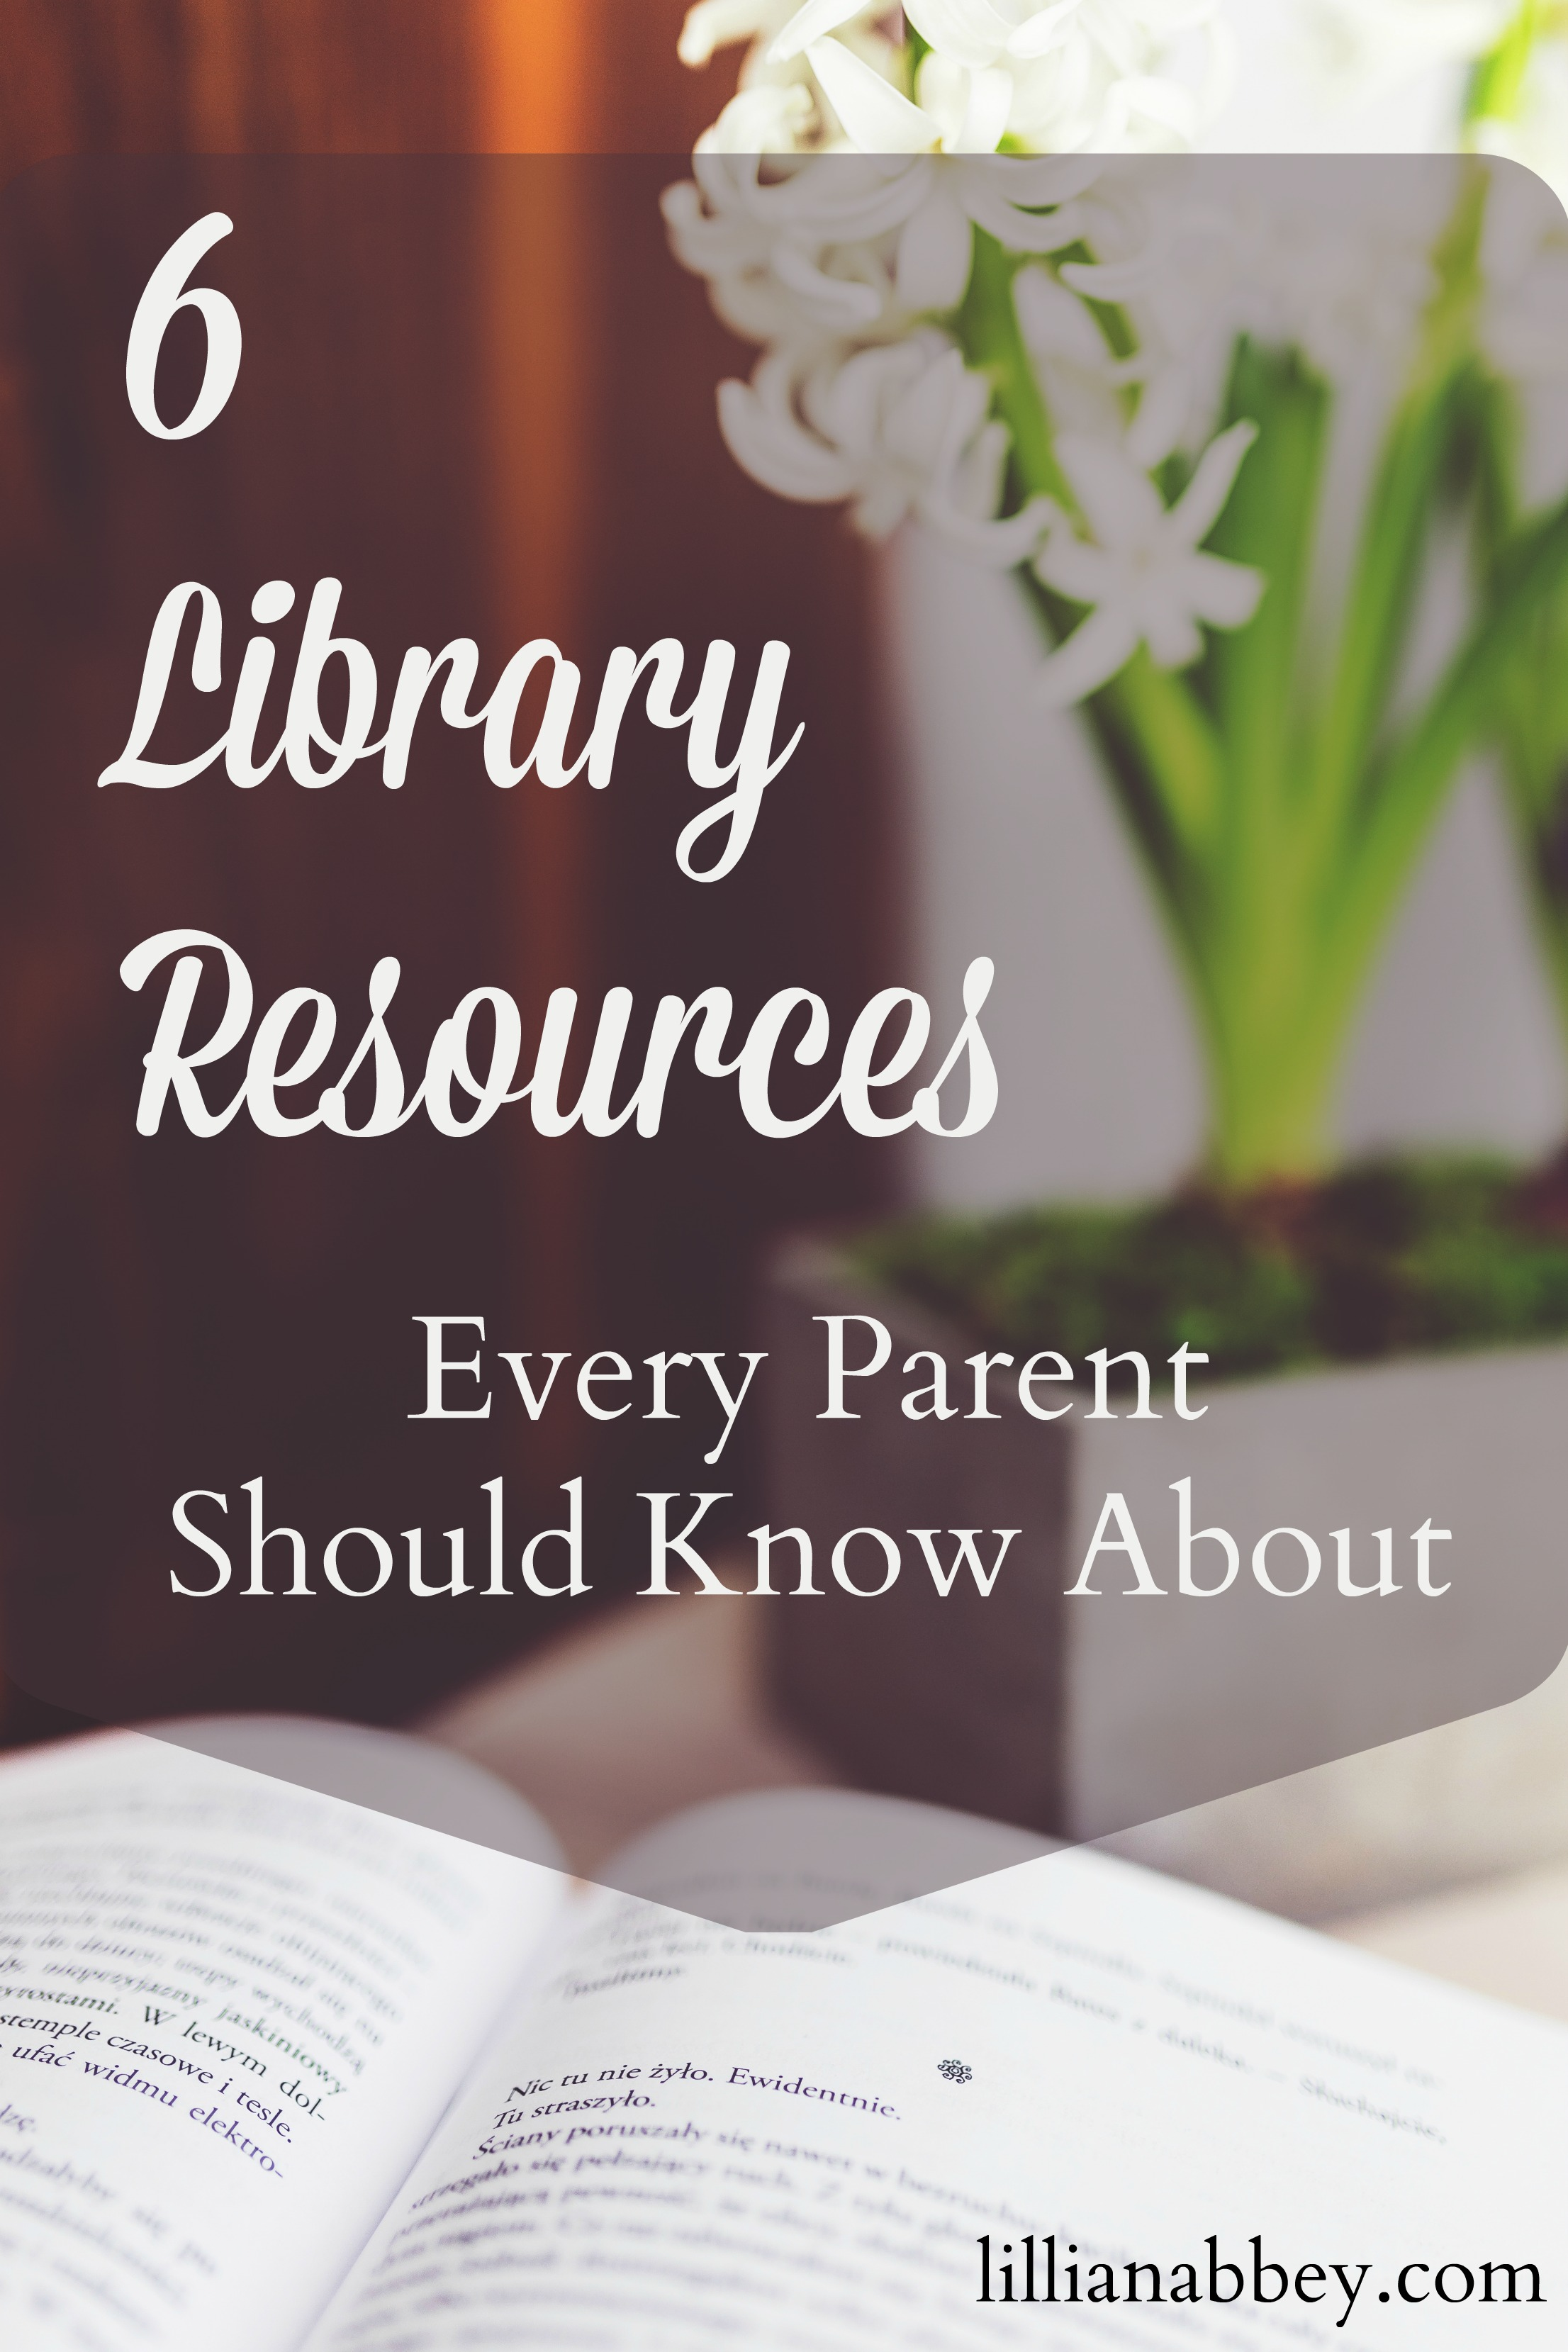 6 Library Resources Every Parent Should Know About